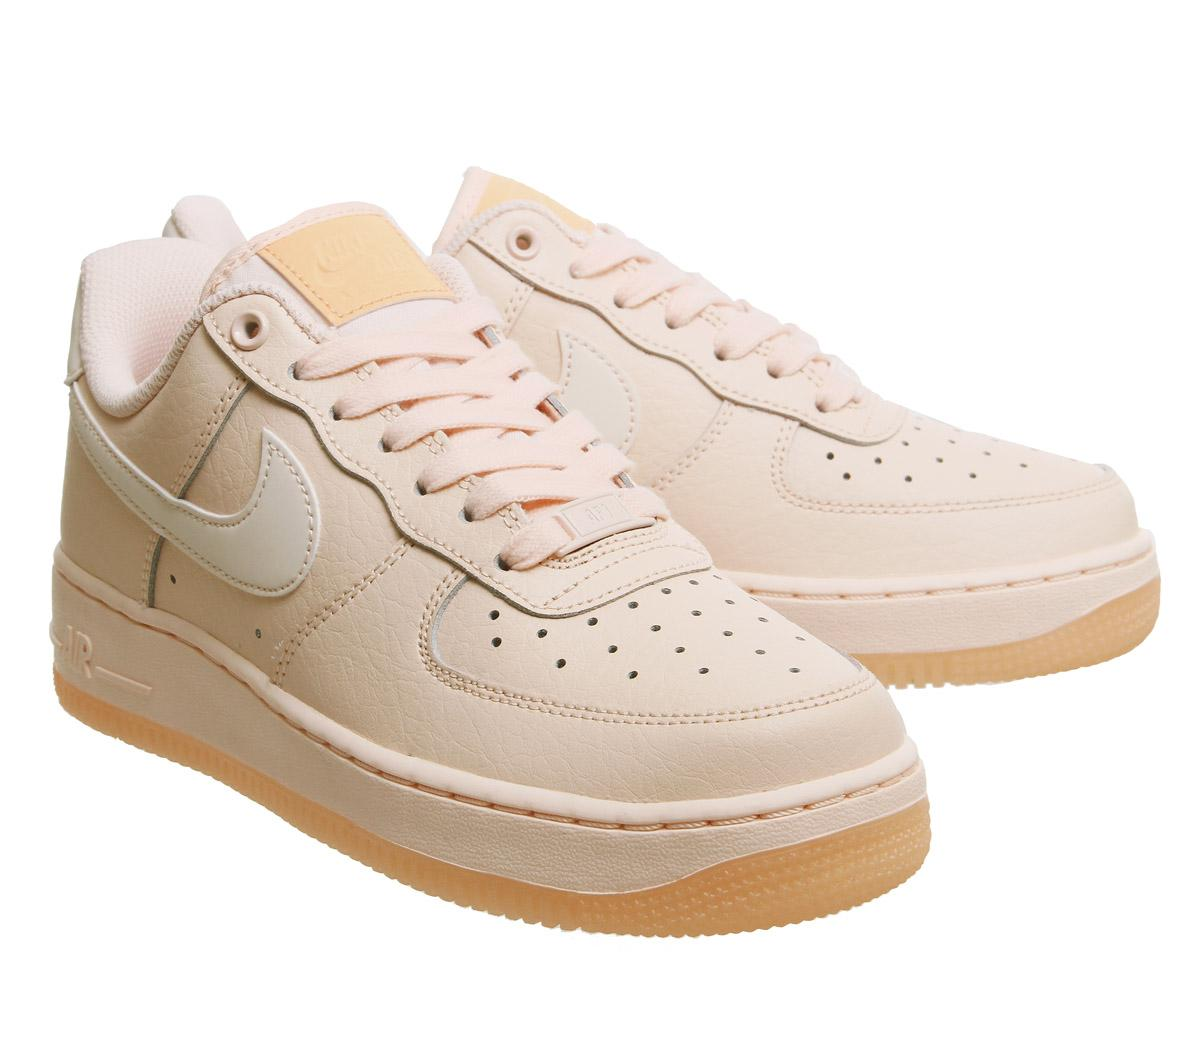 Nike - Multicolor Air Force 1 07 Trainers - Lyst. View fullscreen 8af527b2e